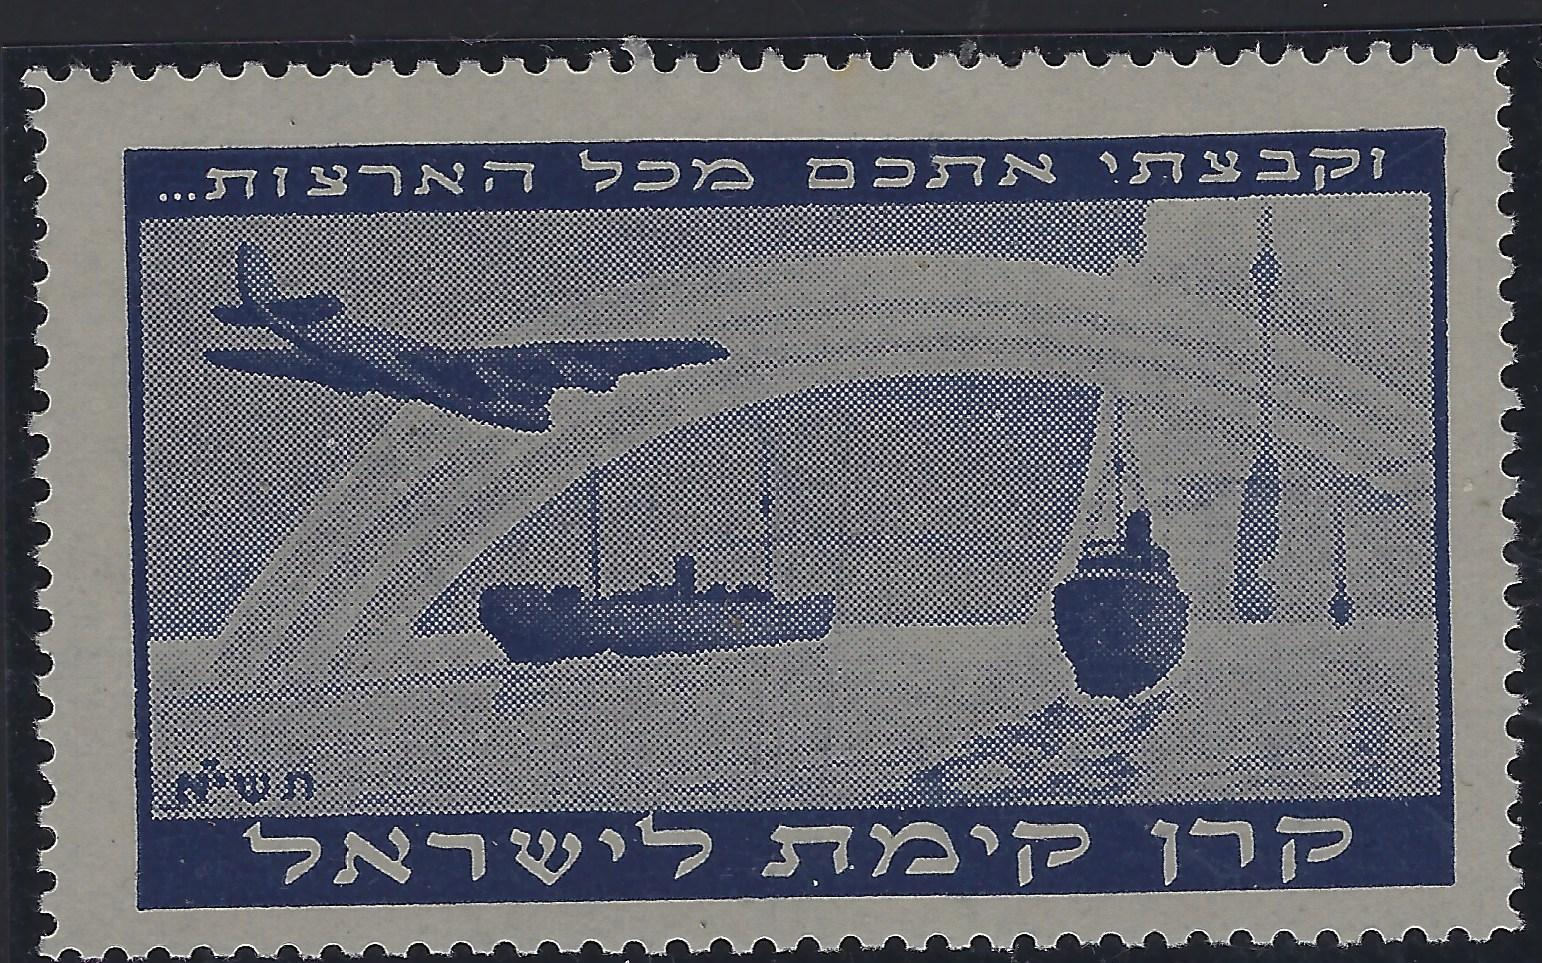 Lot 7 - judaica JNF labels & stamps -  Negev Holyland 93nd Holyland Postal Bid Sale